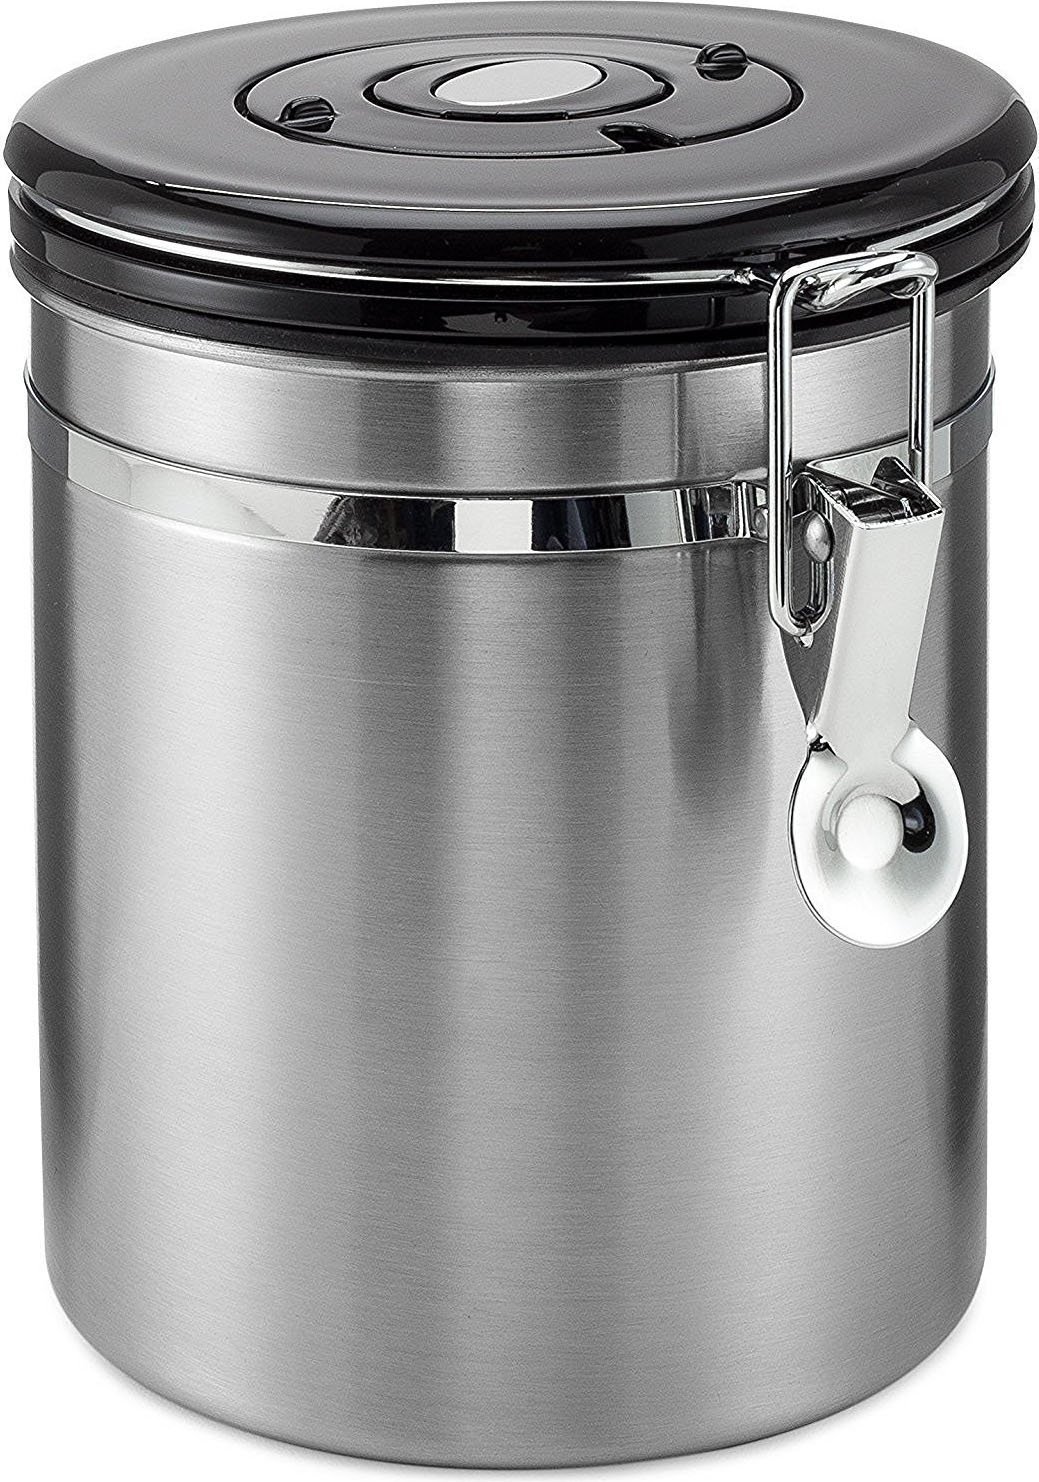 Coffee Container Airtight - Coffee Vault - by Mixpresso (16 Ounces, Stainless Steel) Mixpresso Coffee COMIN18JU036557